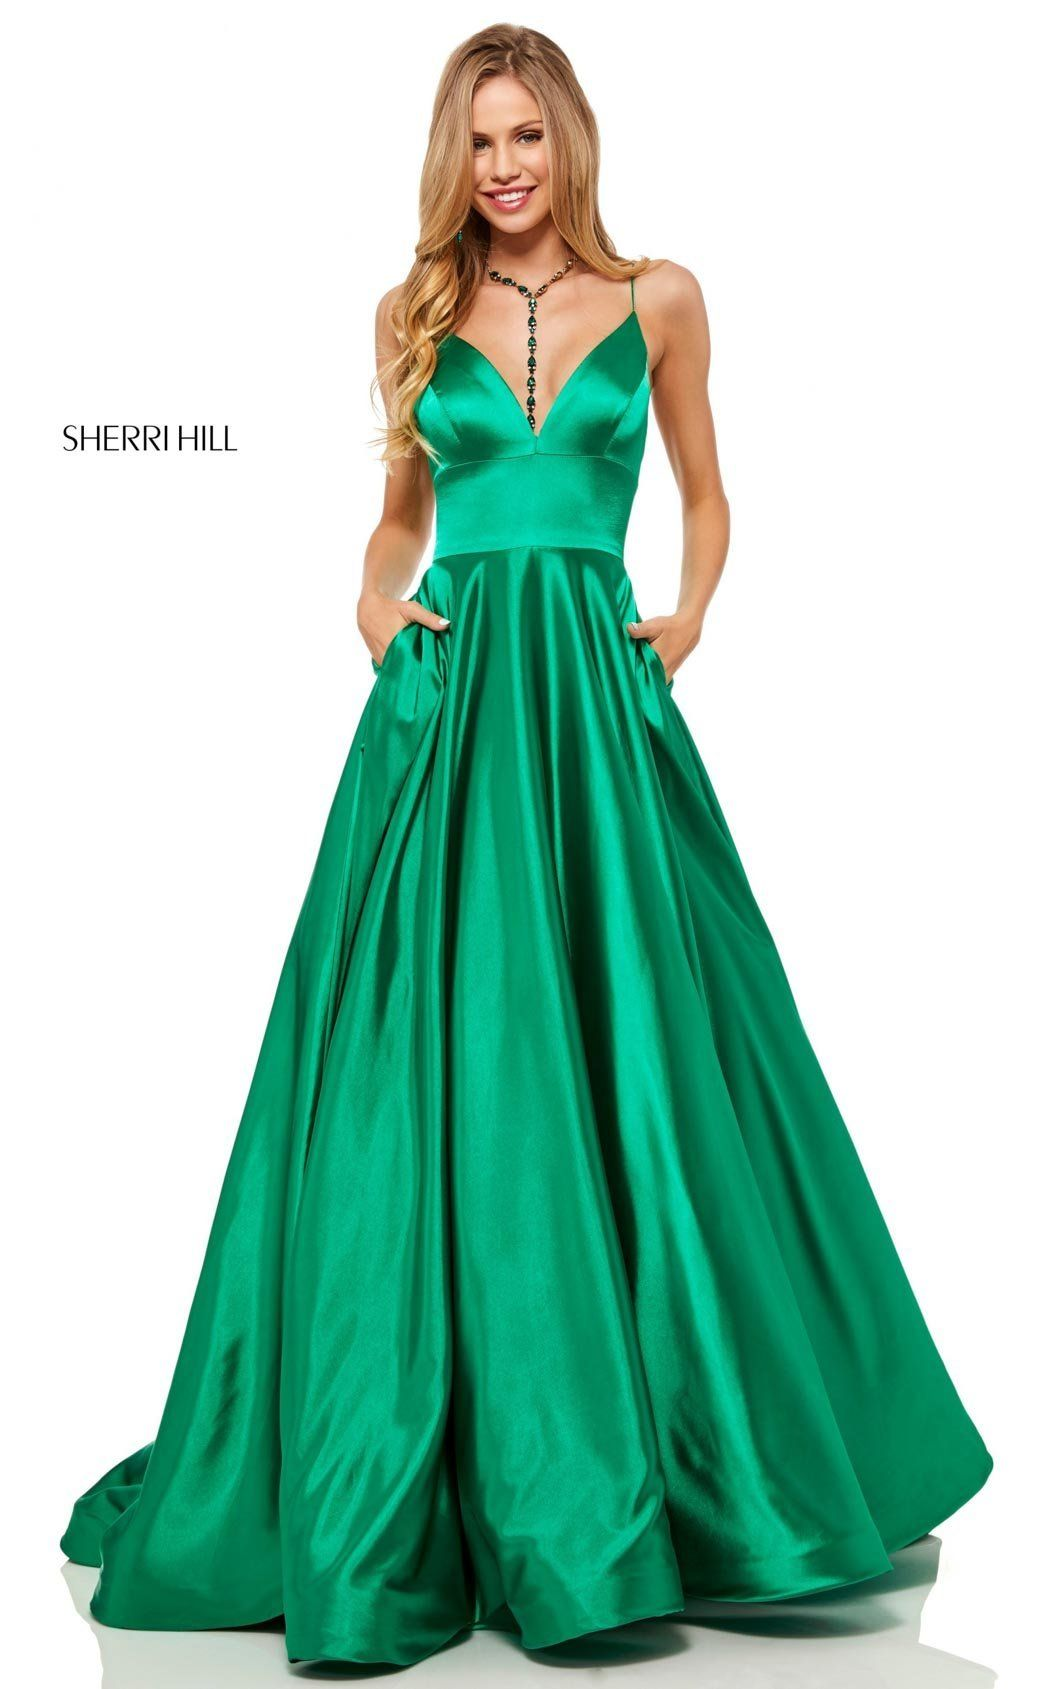 Sherri hill products pinterest gowns dresses and prom